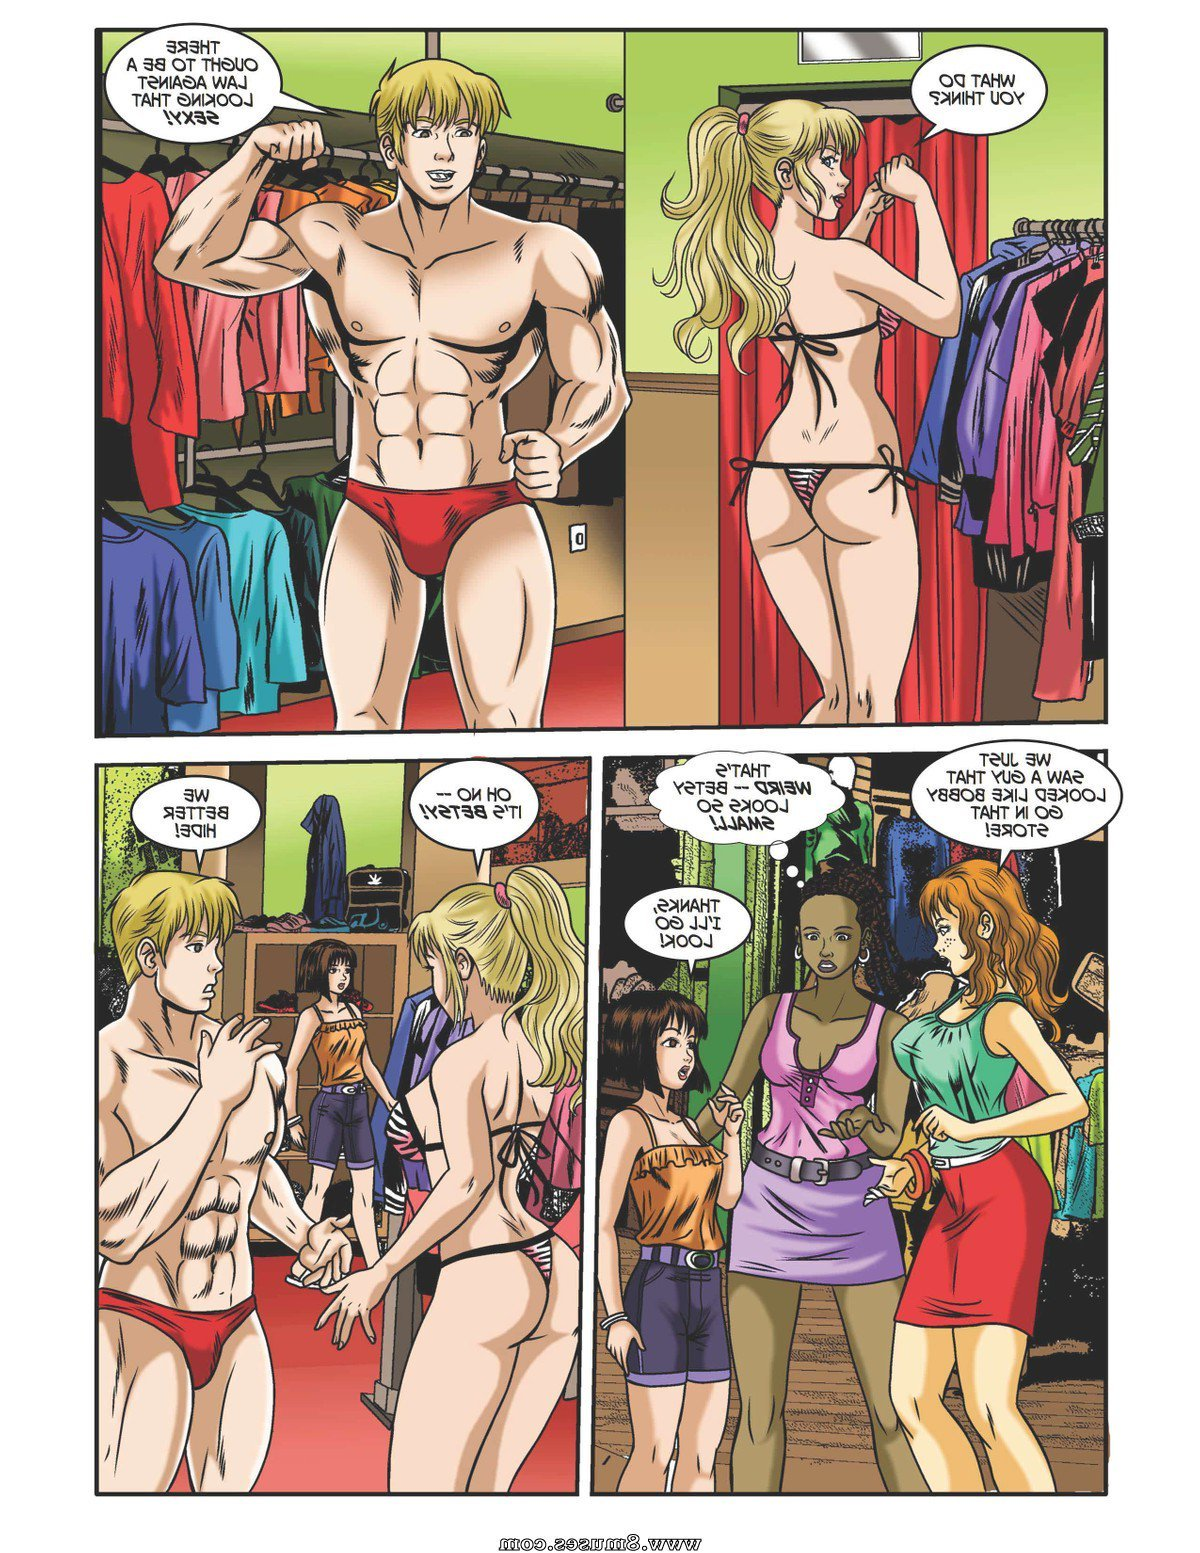 DreamTales-Comics/A-Growing-Attraction/Issue-1 A_Growing_Attraction_-_Issue_1_37.jpg